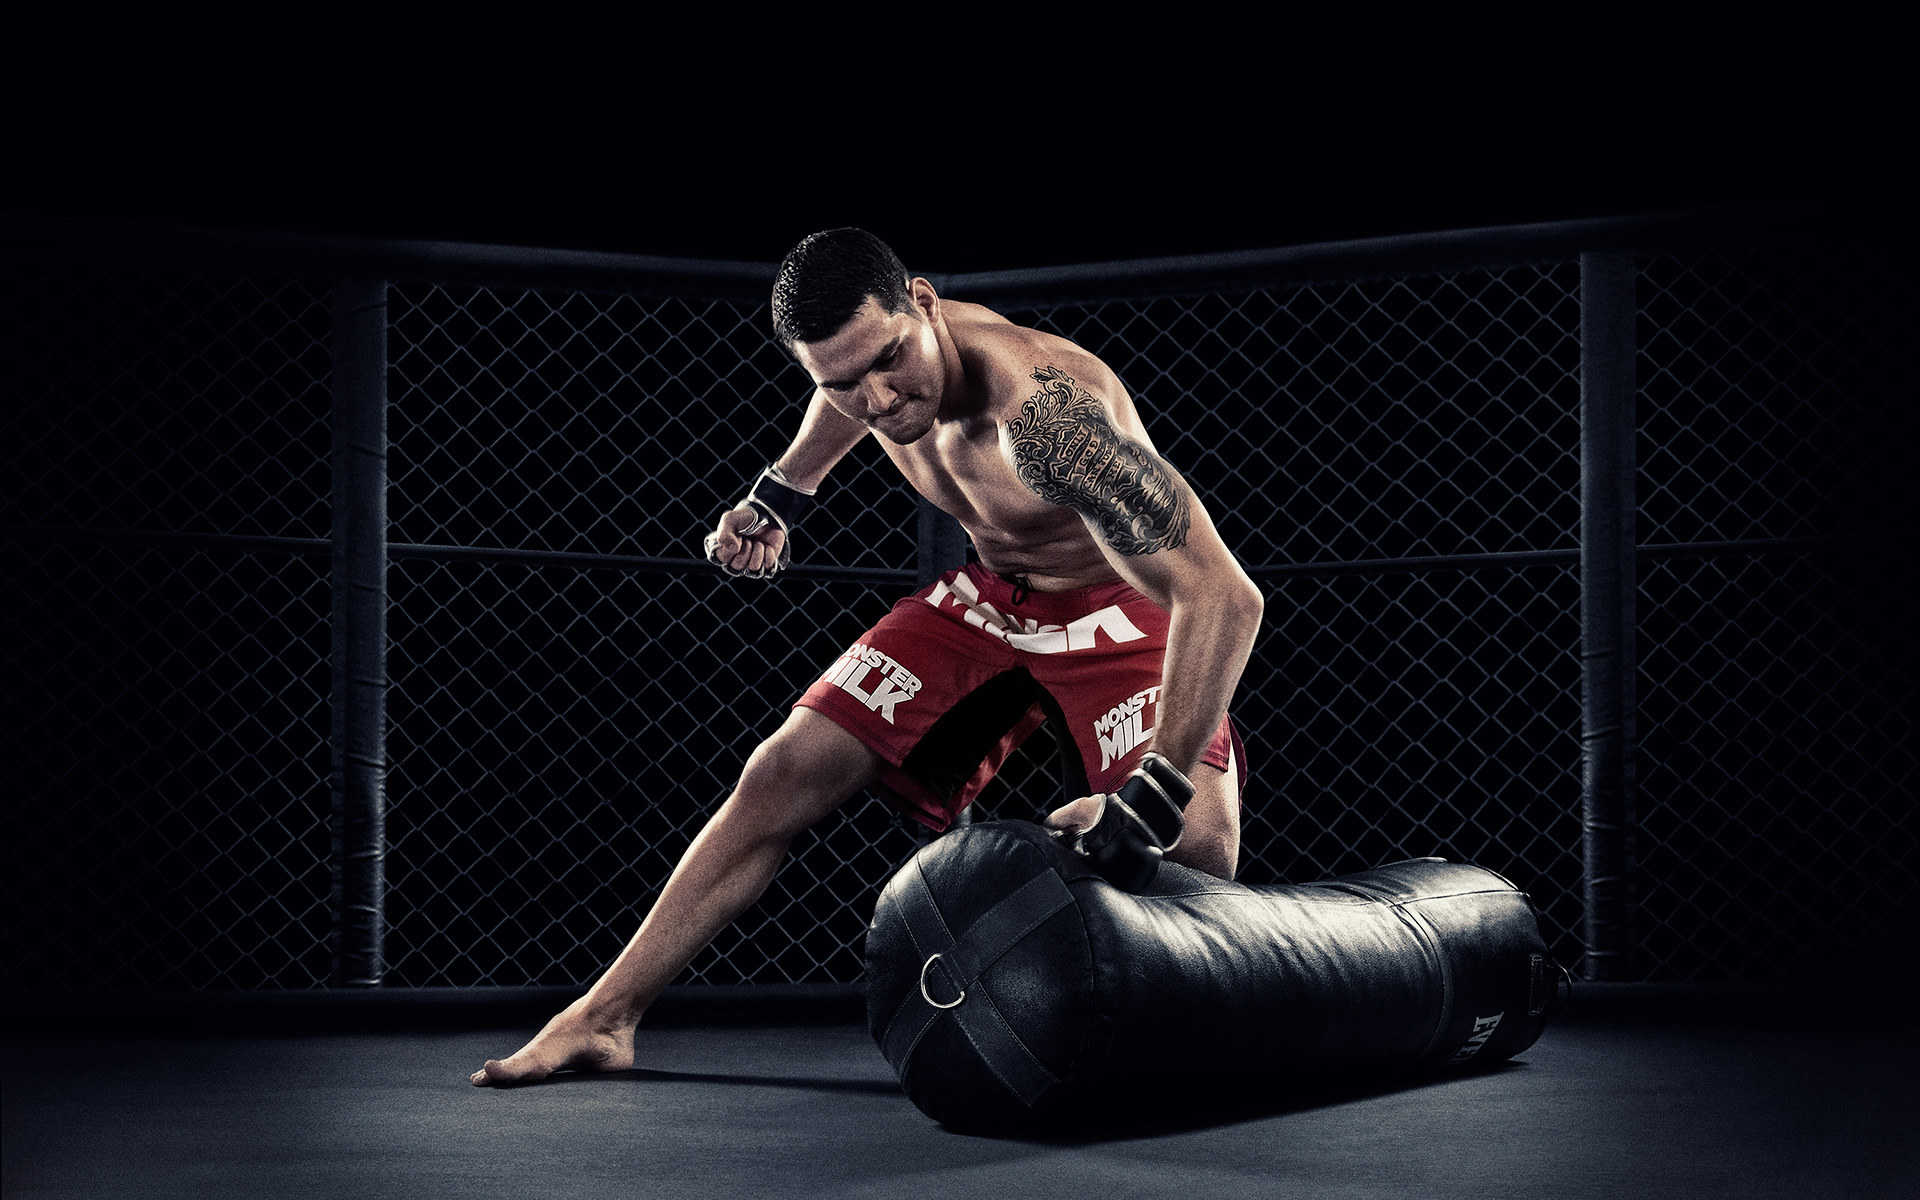 Chris Weidman Monster Milk ©B Bunting